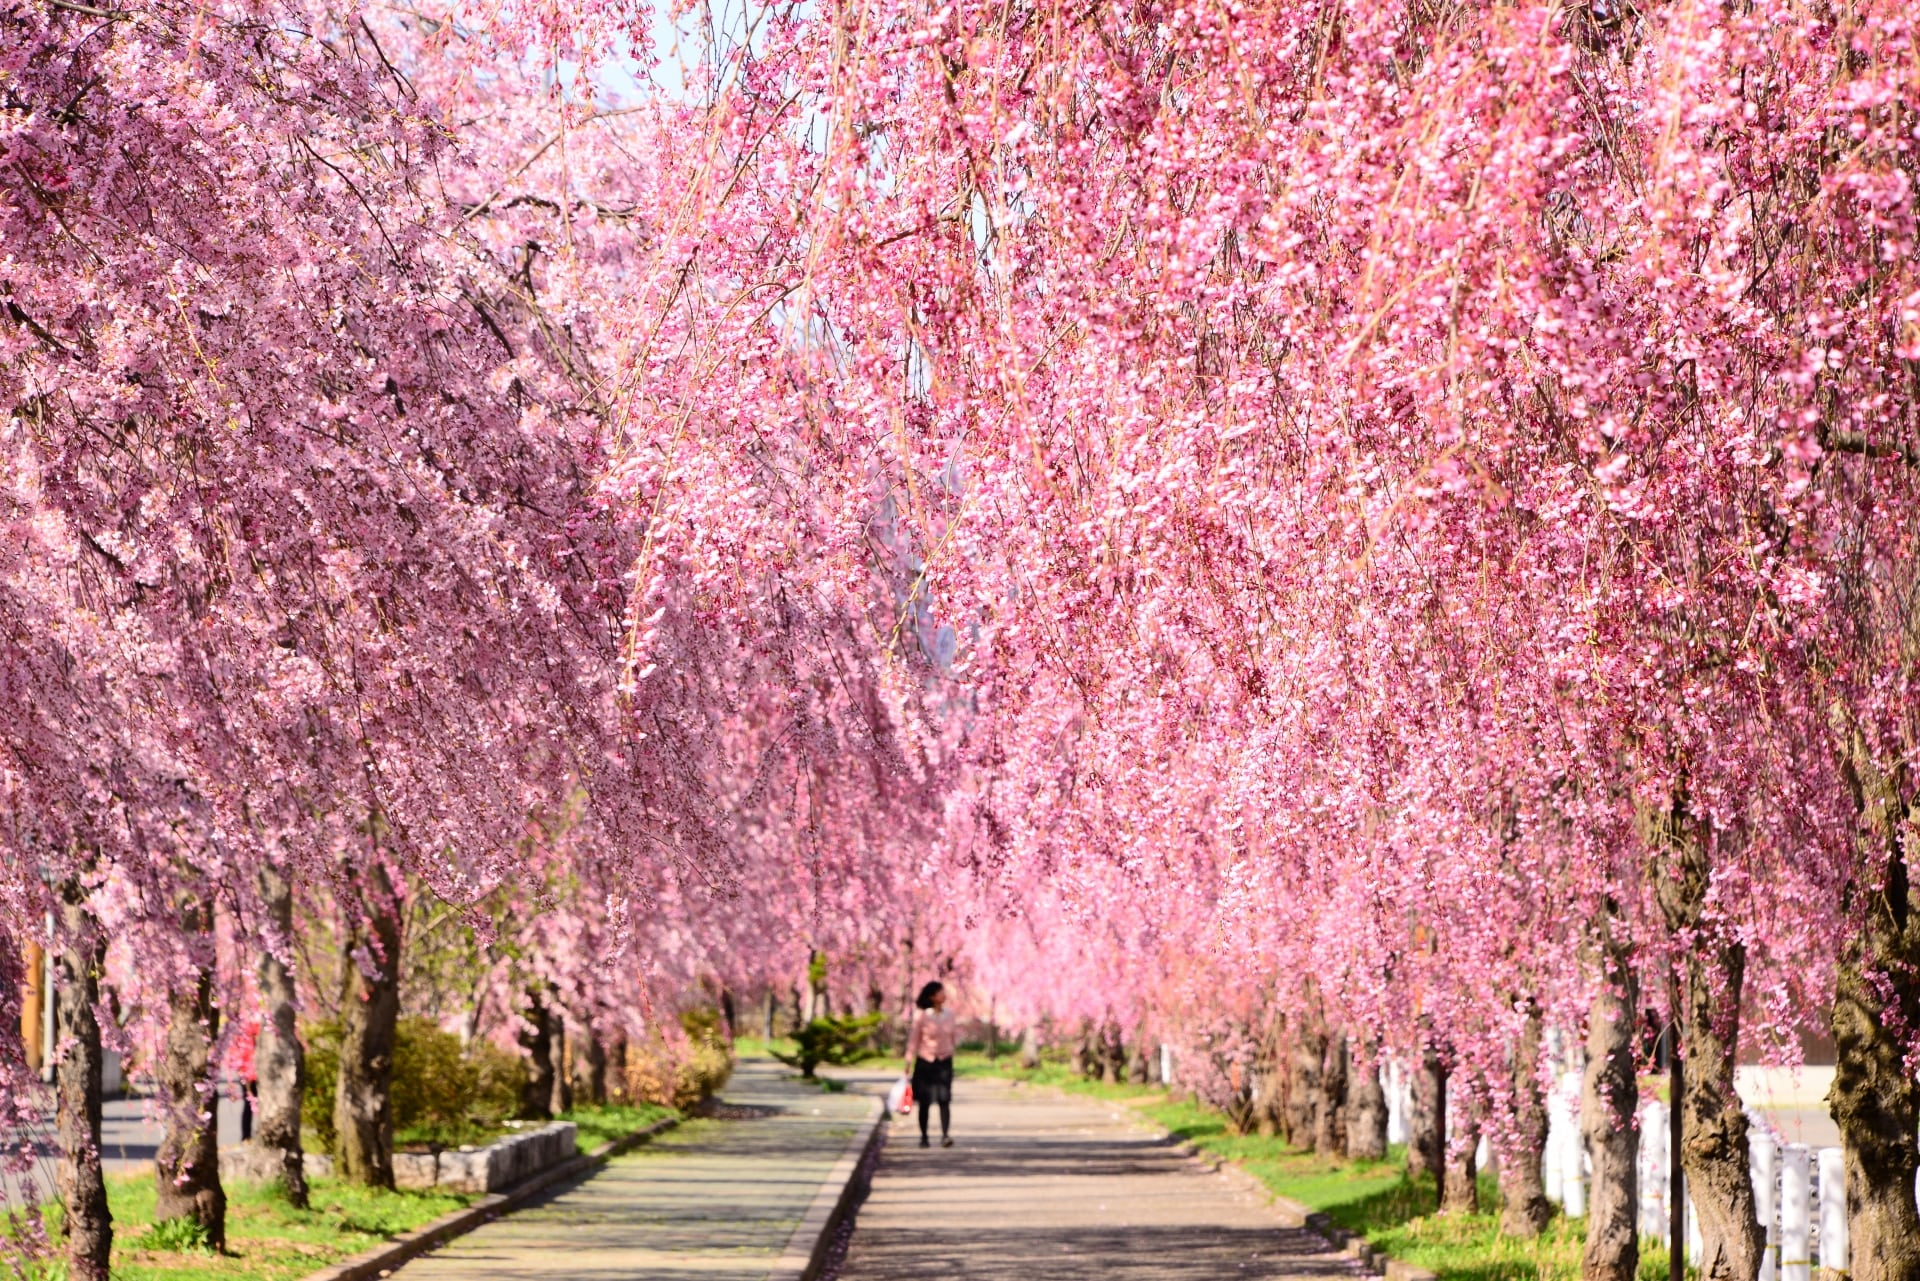 Nicchu Line Weeping Cherry Blossoms 2020